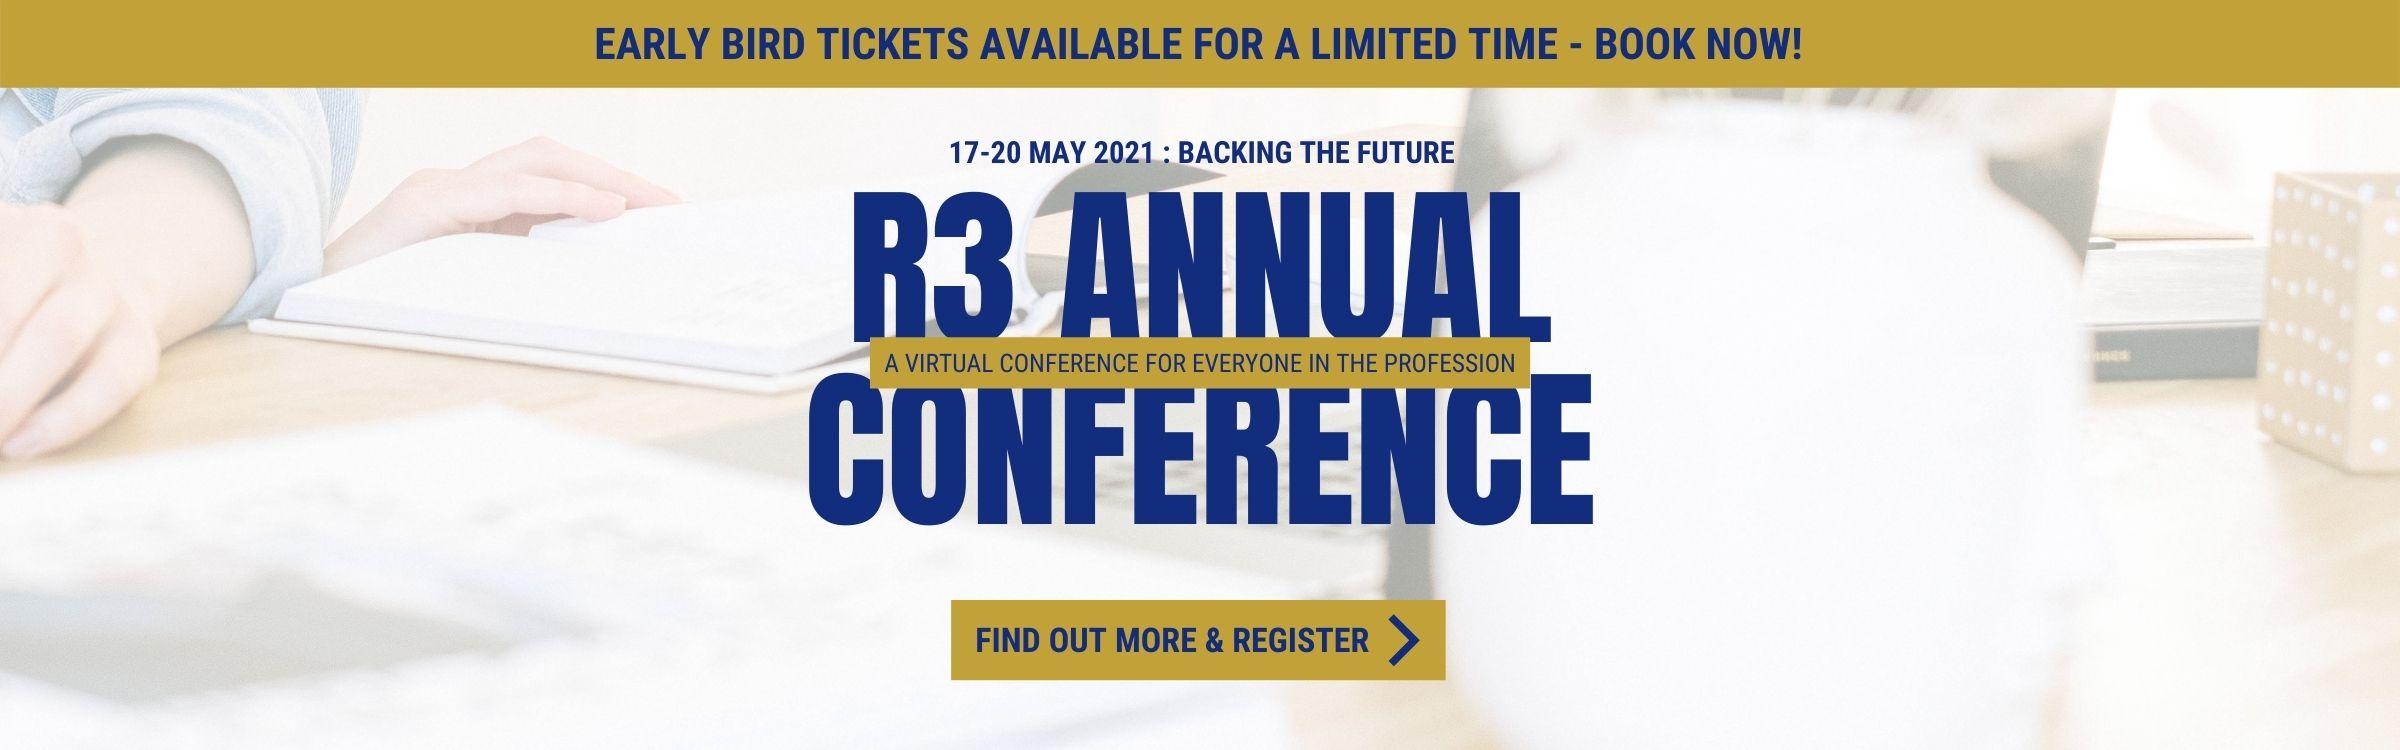 R3 Annual Conference